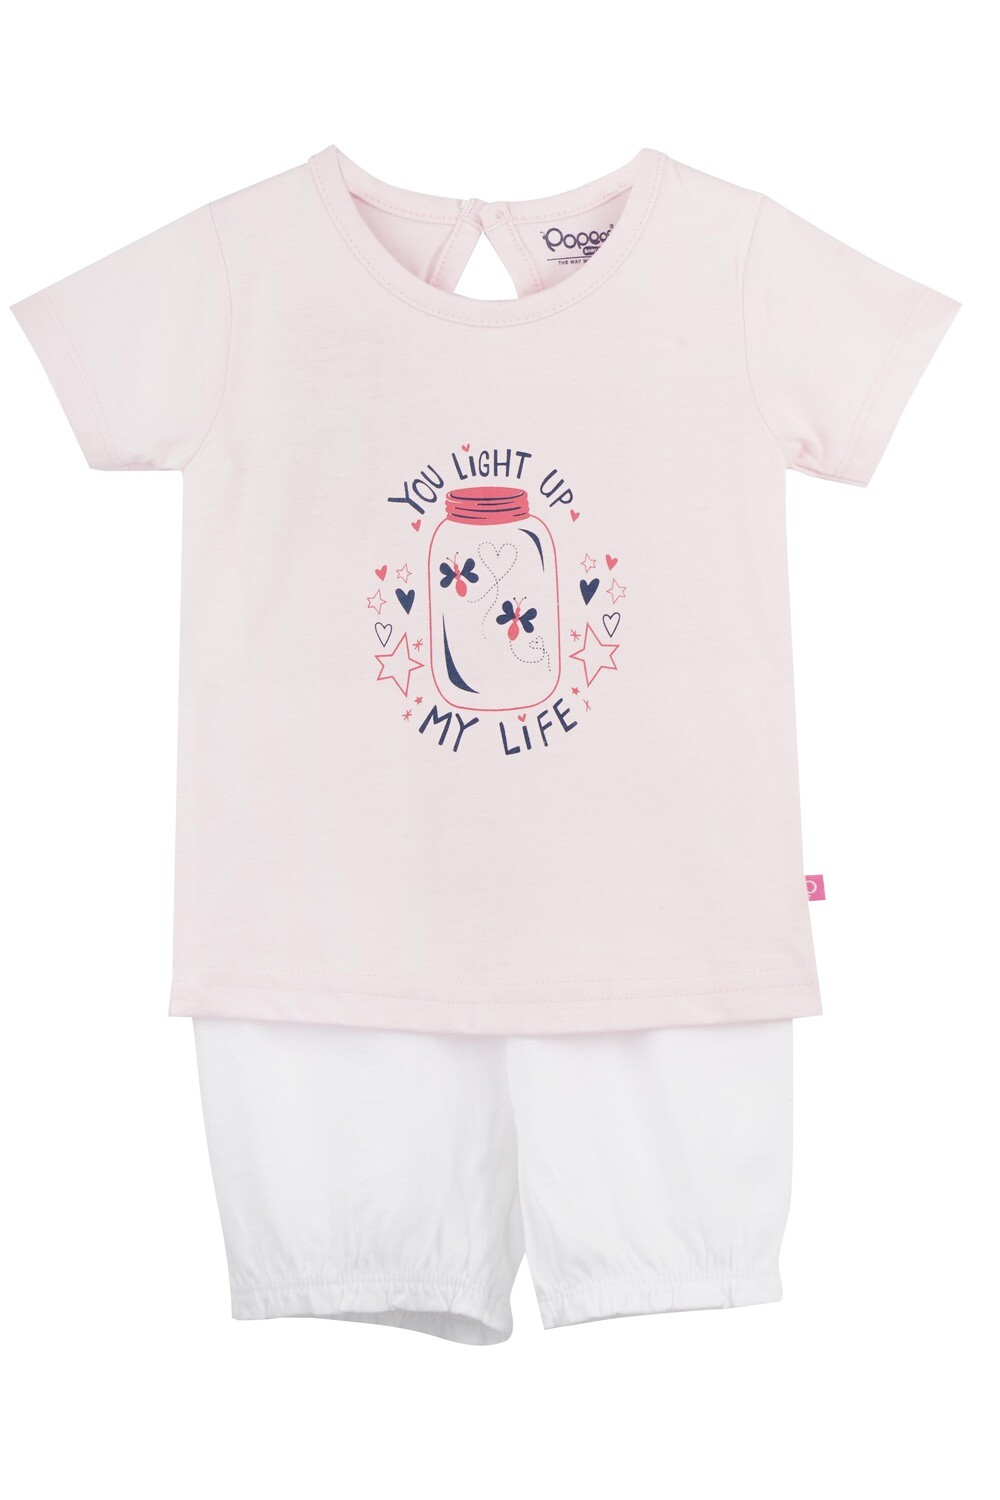 UNICORN Fairy Tale Half sleeve Top and Trouser for Baby Girls